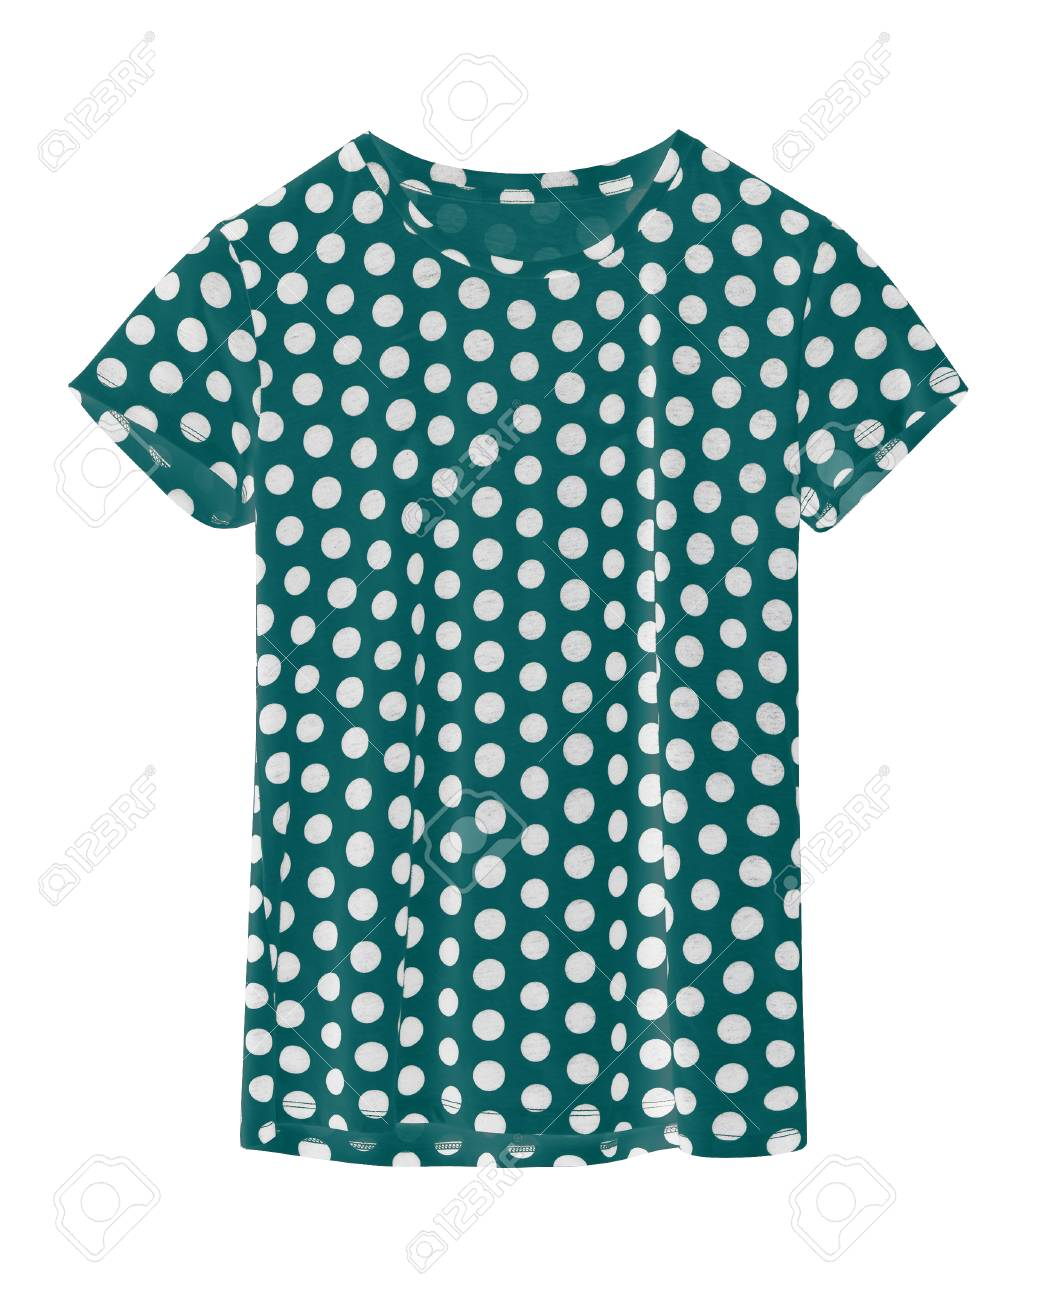 031f433686f1f6 Stock Photo - Turquoise sea color t-shirt in white polka dots isolated on  white background